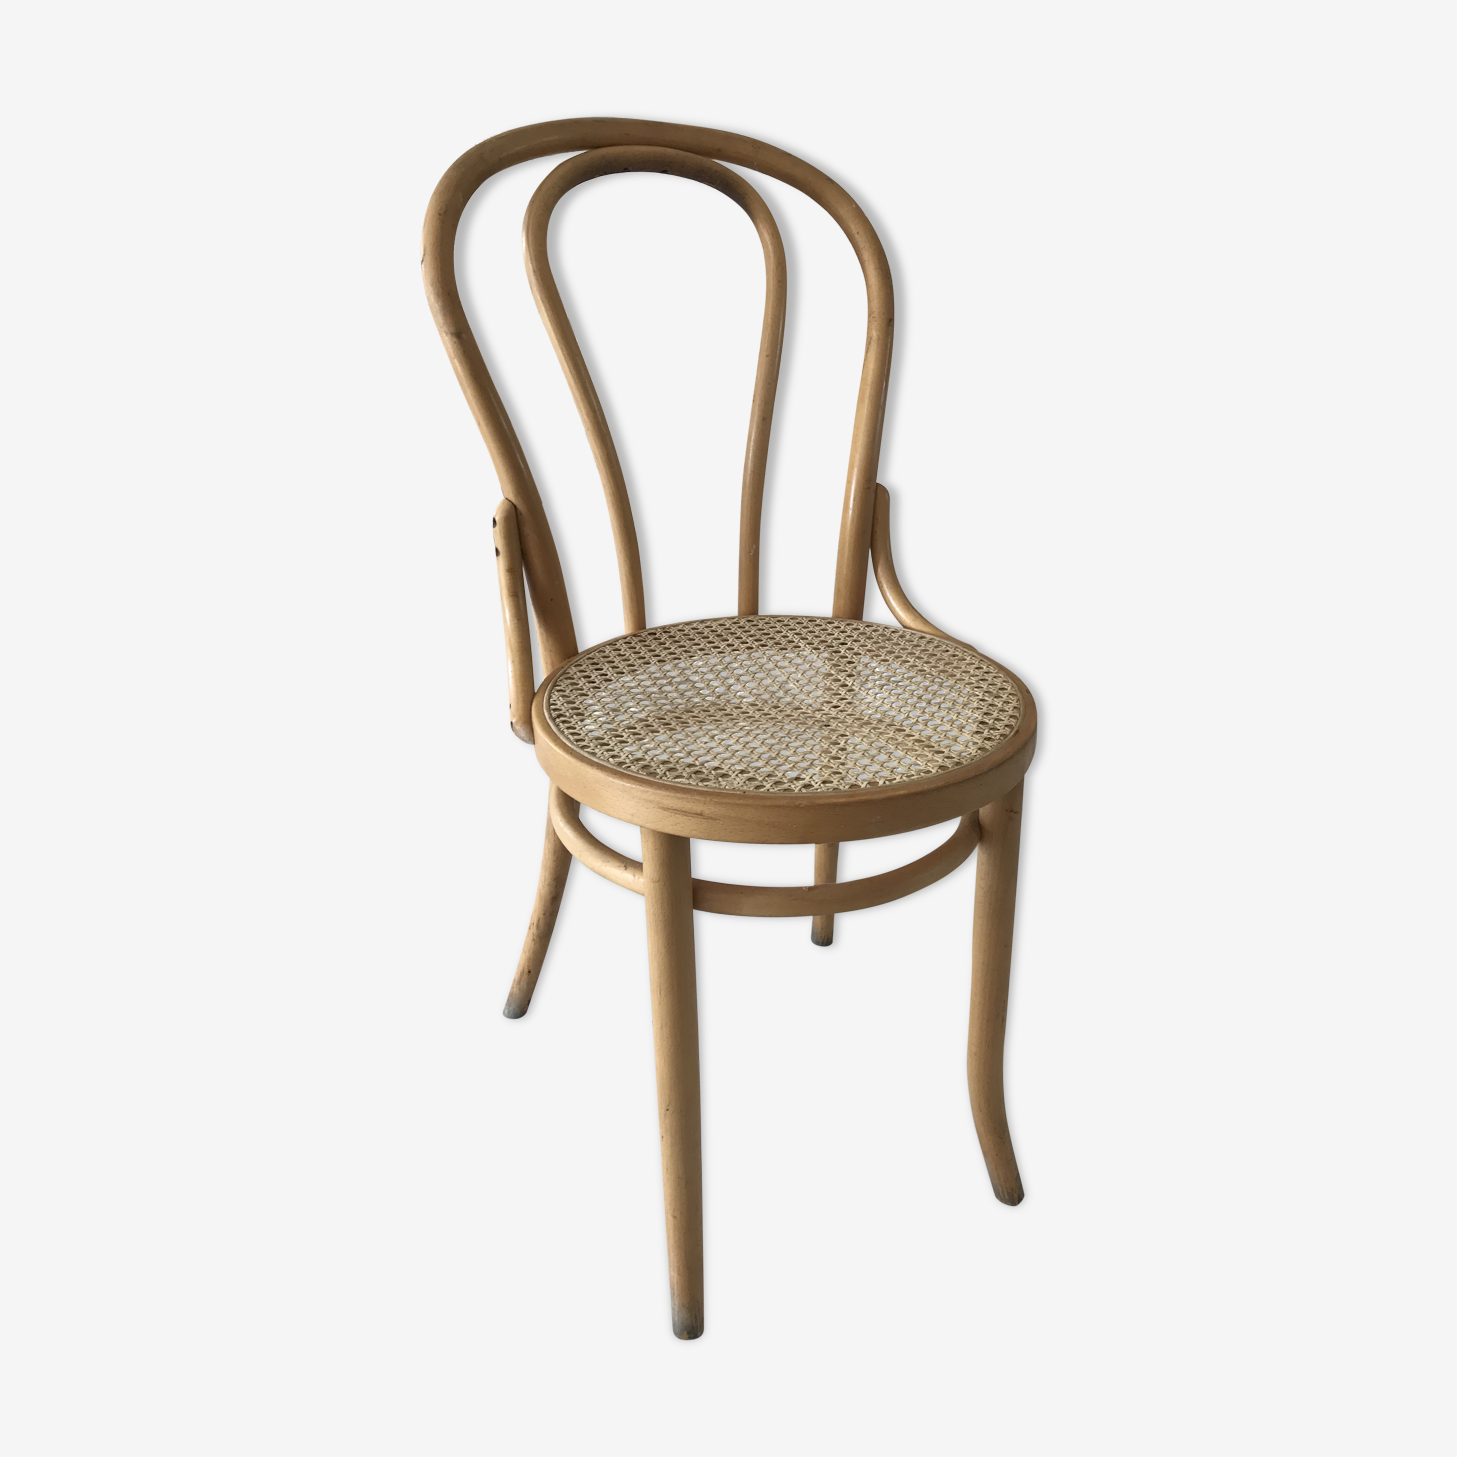 Chaise bistrot bois Thonet